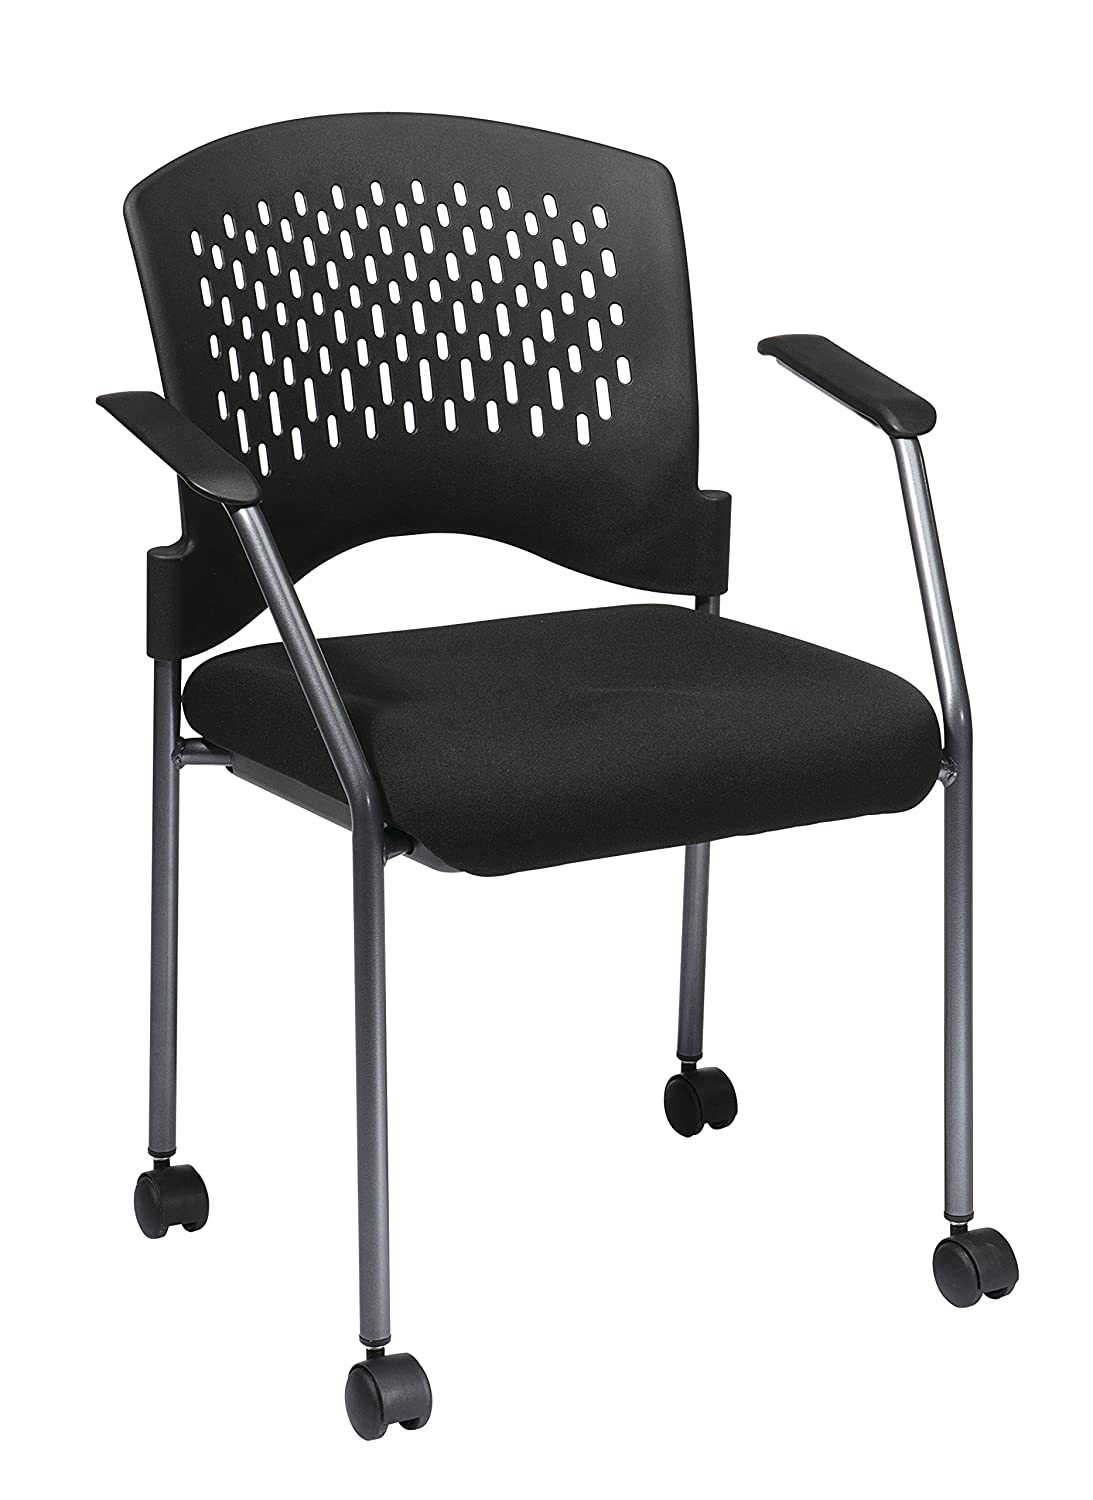 Office Star Ventilated Plastic Back and Padded Coal Free Flex Seat, Fixed Arms, Titanium Finish Stacking Visitors Chair with Casters, Black 8640-30